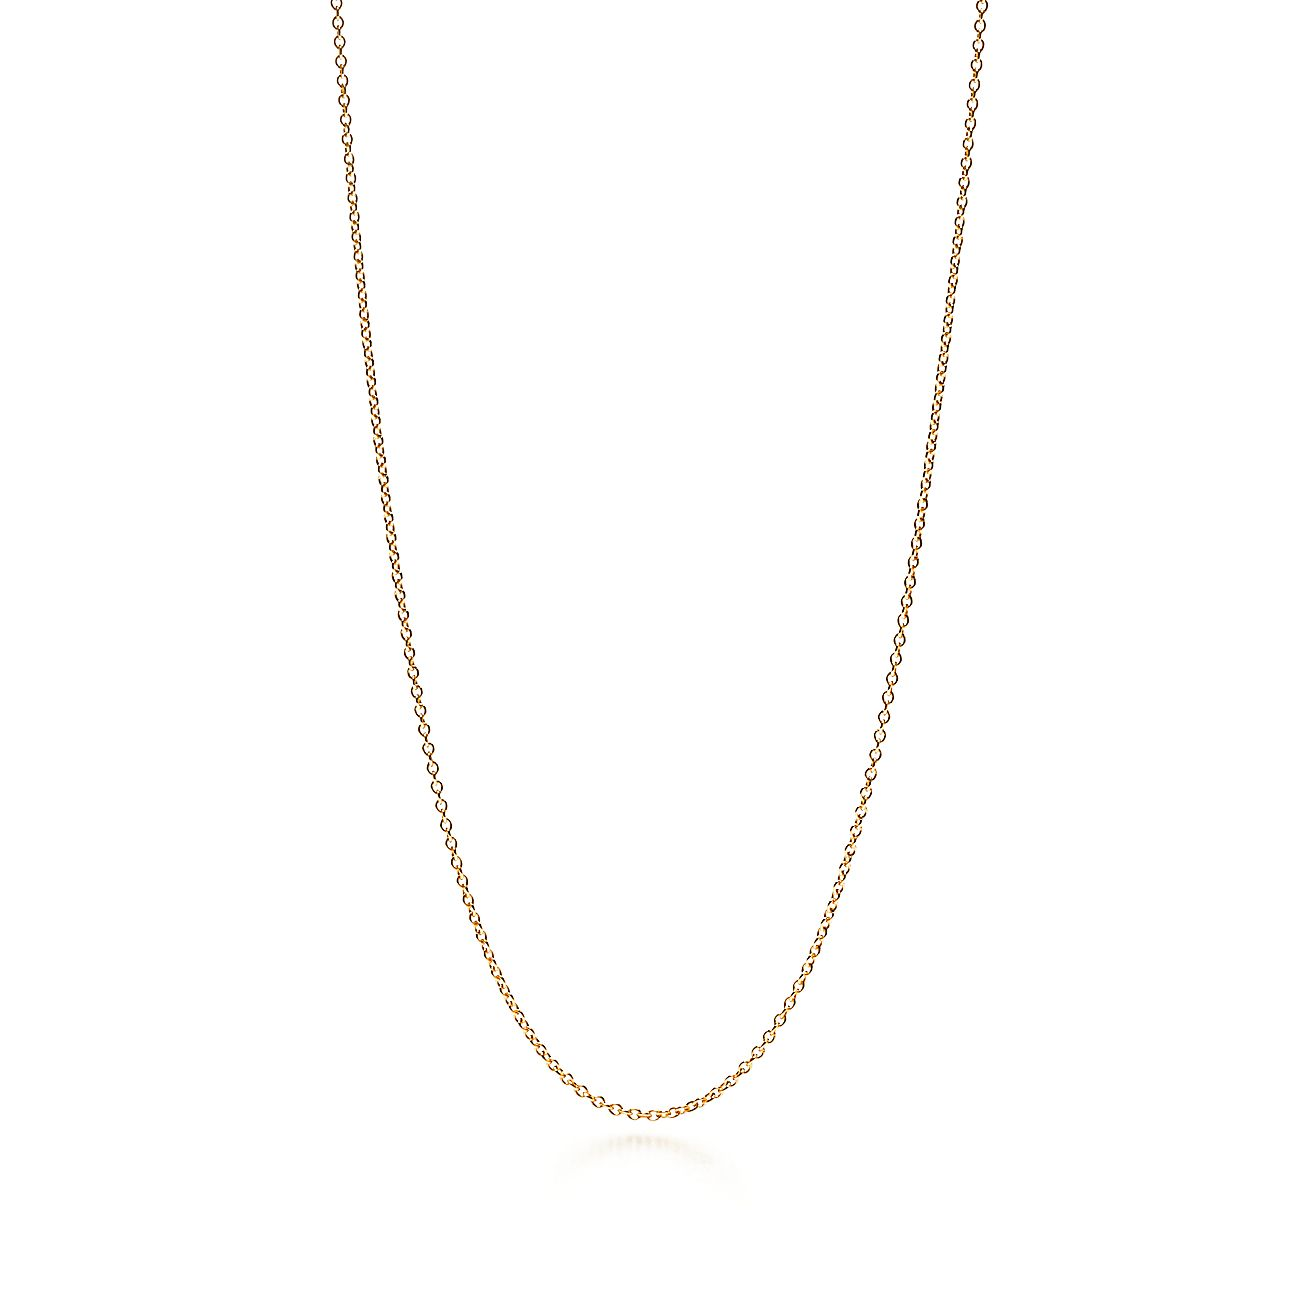 Shop 18K Gold Chain Necklace in 30\